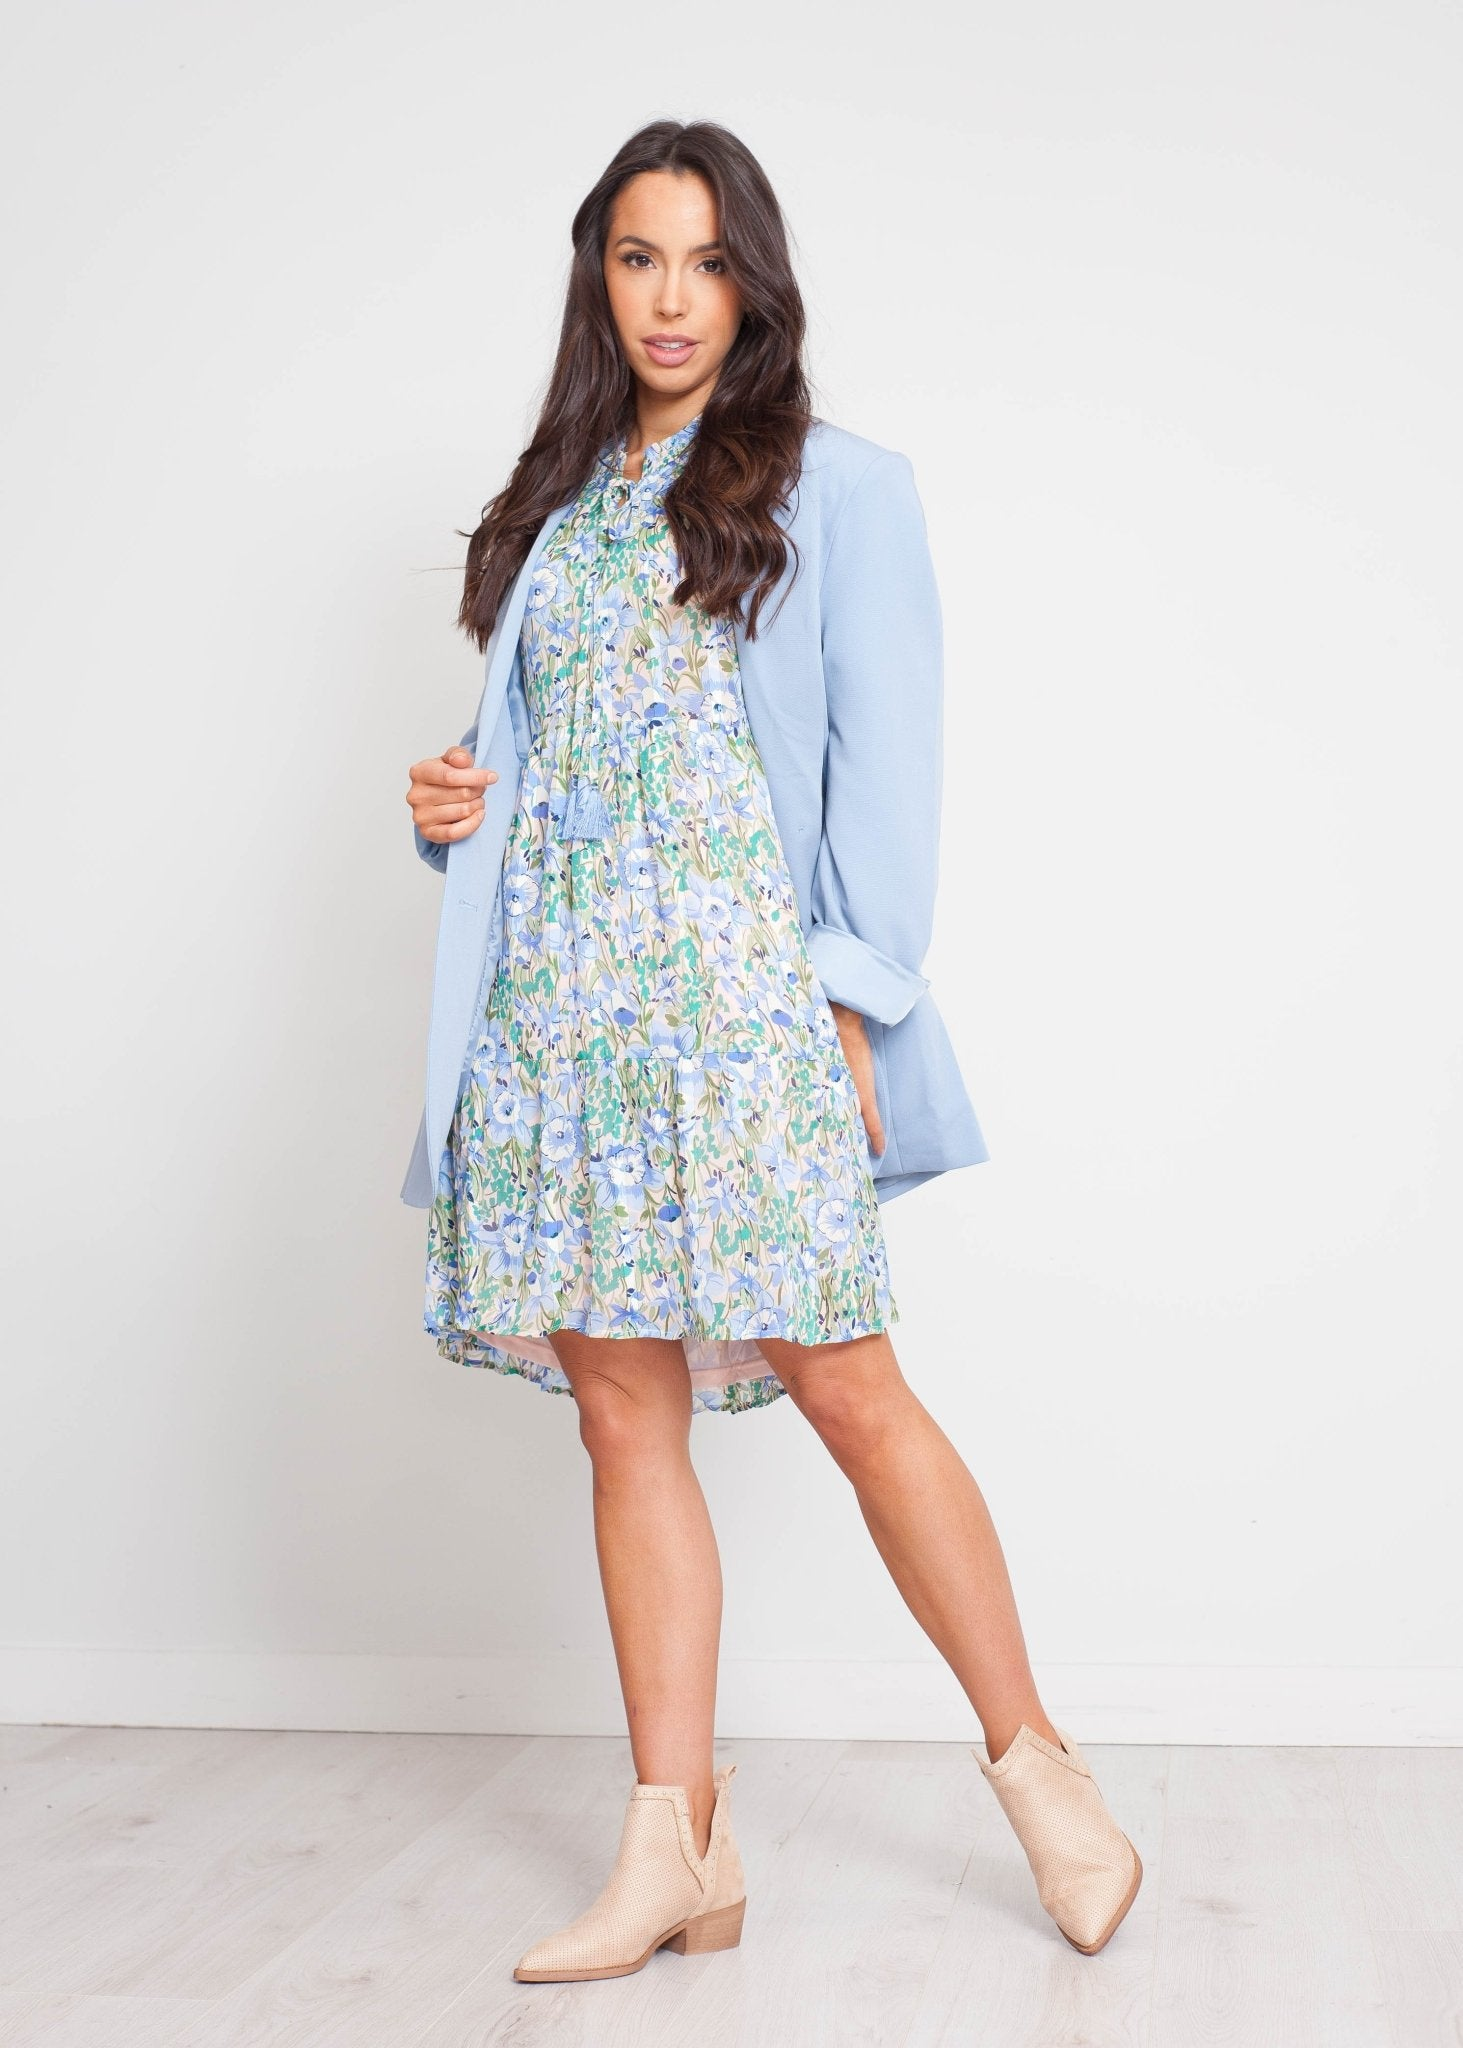 Emilia Floral Print Dress In Blue Mix - The Walk in Wardrobe